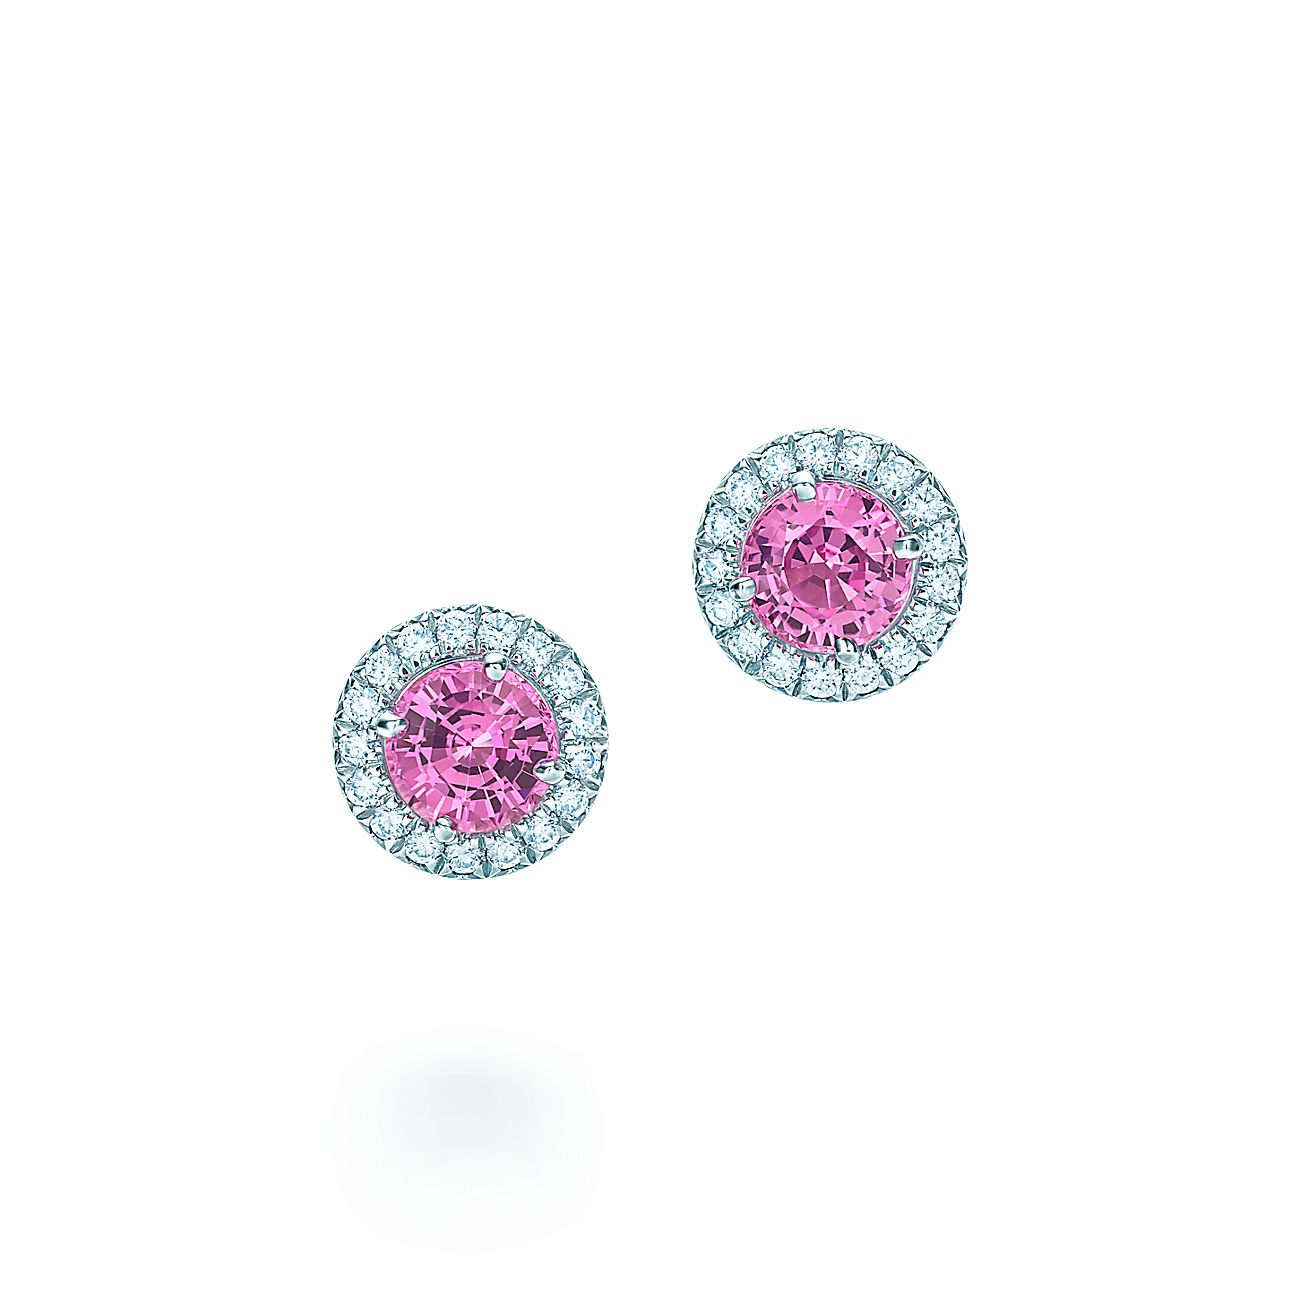 Tiffany Soleste Earrings In Platinum With Pink Shires And Diamonds Co